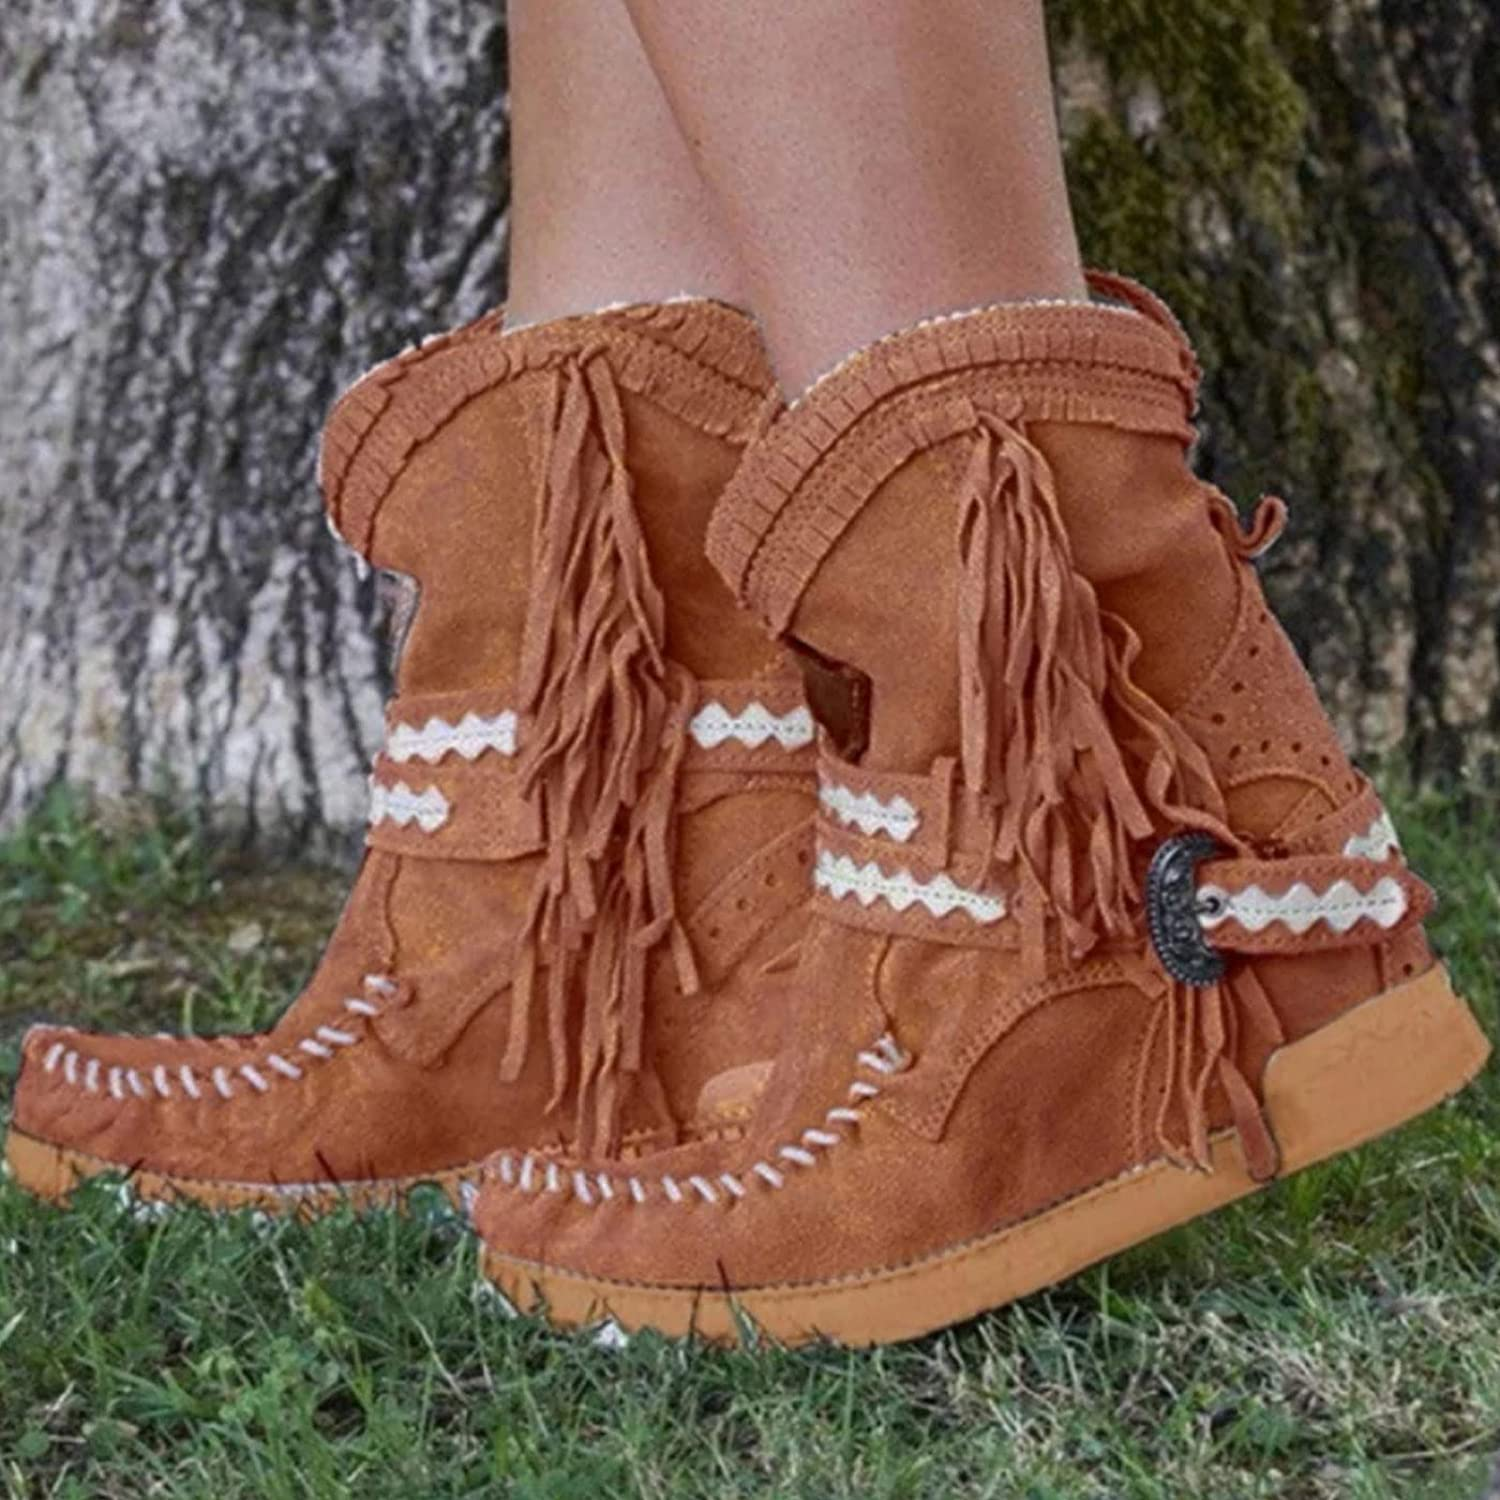 CAICAIL Brand Cheap Sale Venue Regular store Women's Western Cowgirl Boots Heel Casual S Flat Fringed